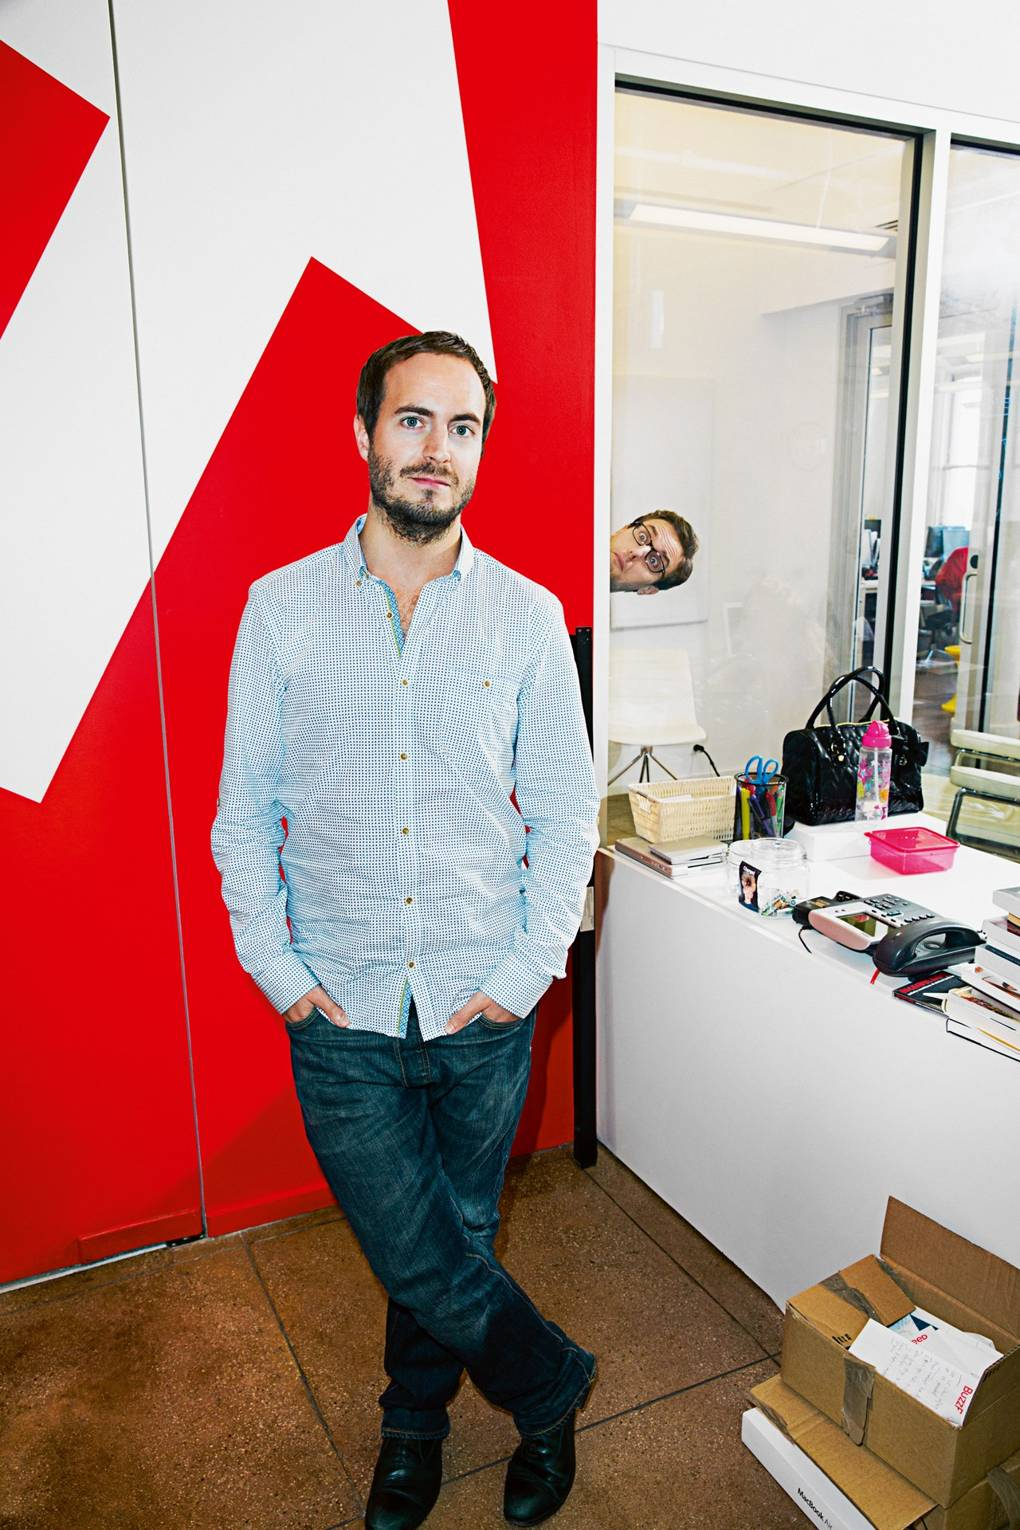 How BuzzFeed mastered social sharing to become a media giant